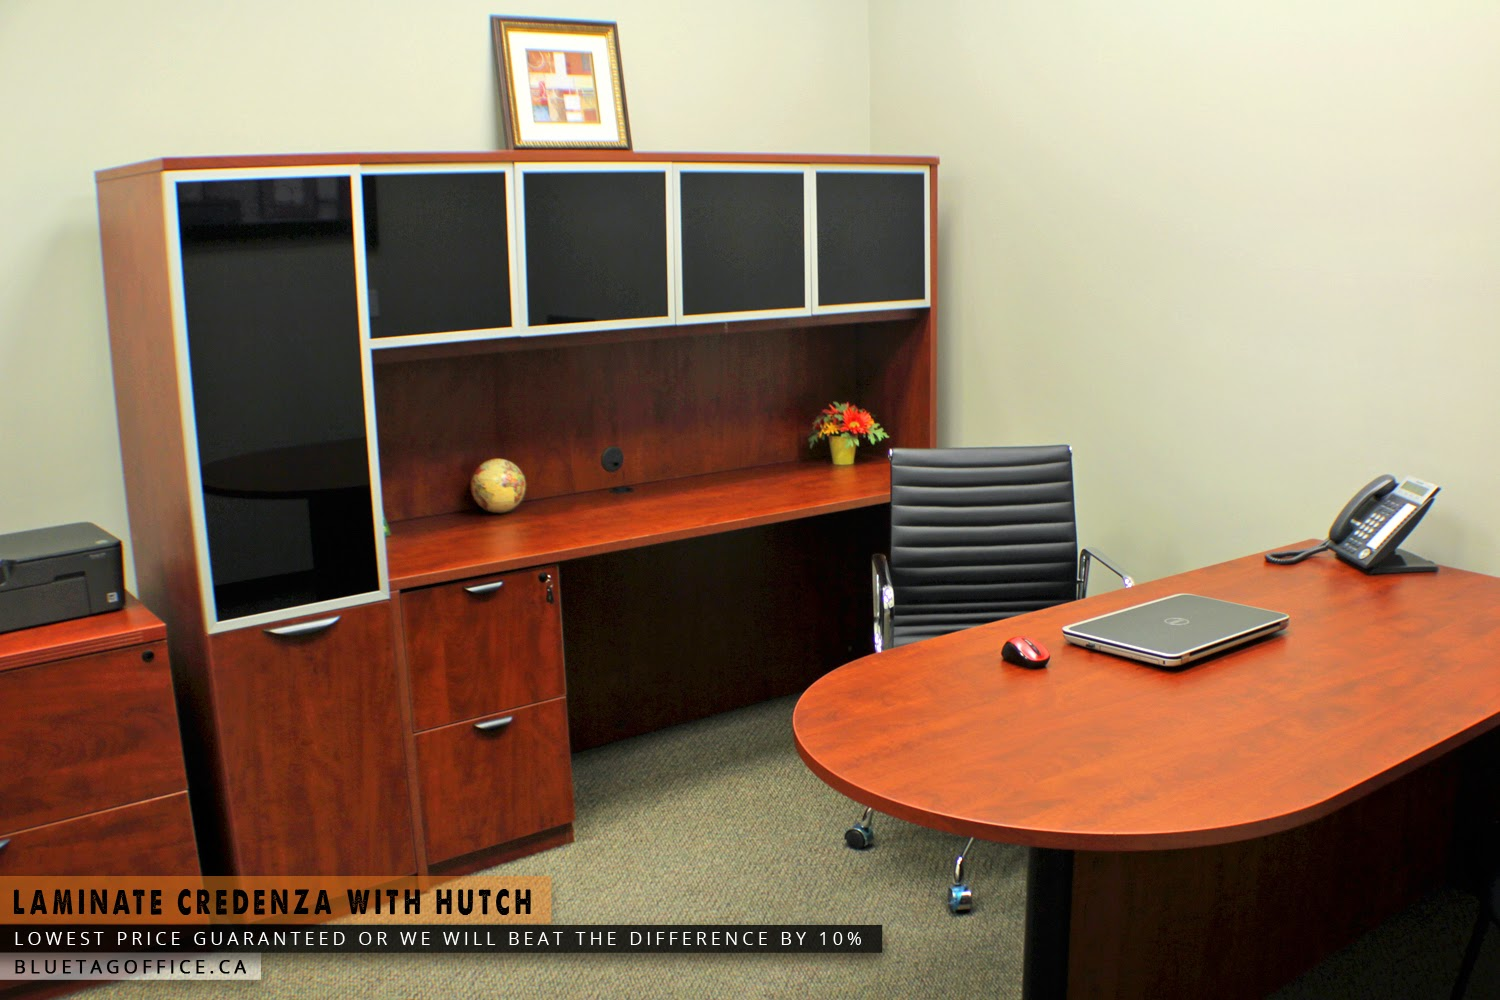 Office Chair On Sale In Canada Laminate Credenza With Hutch On SALE